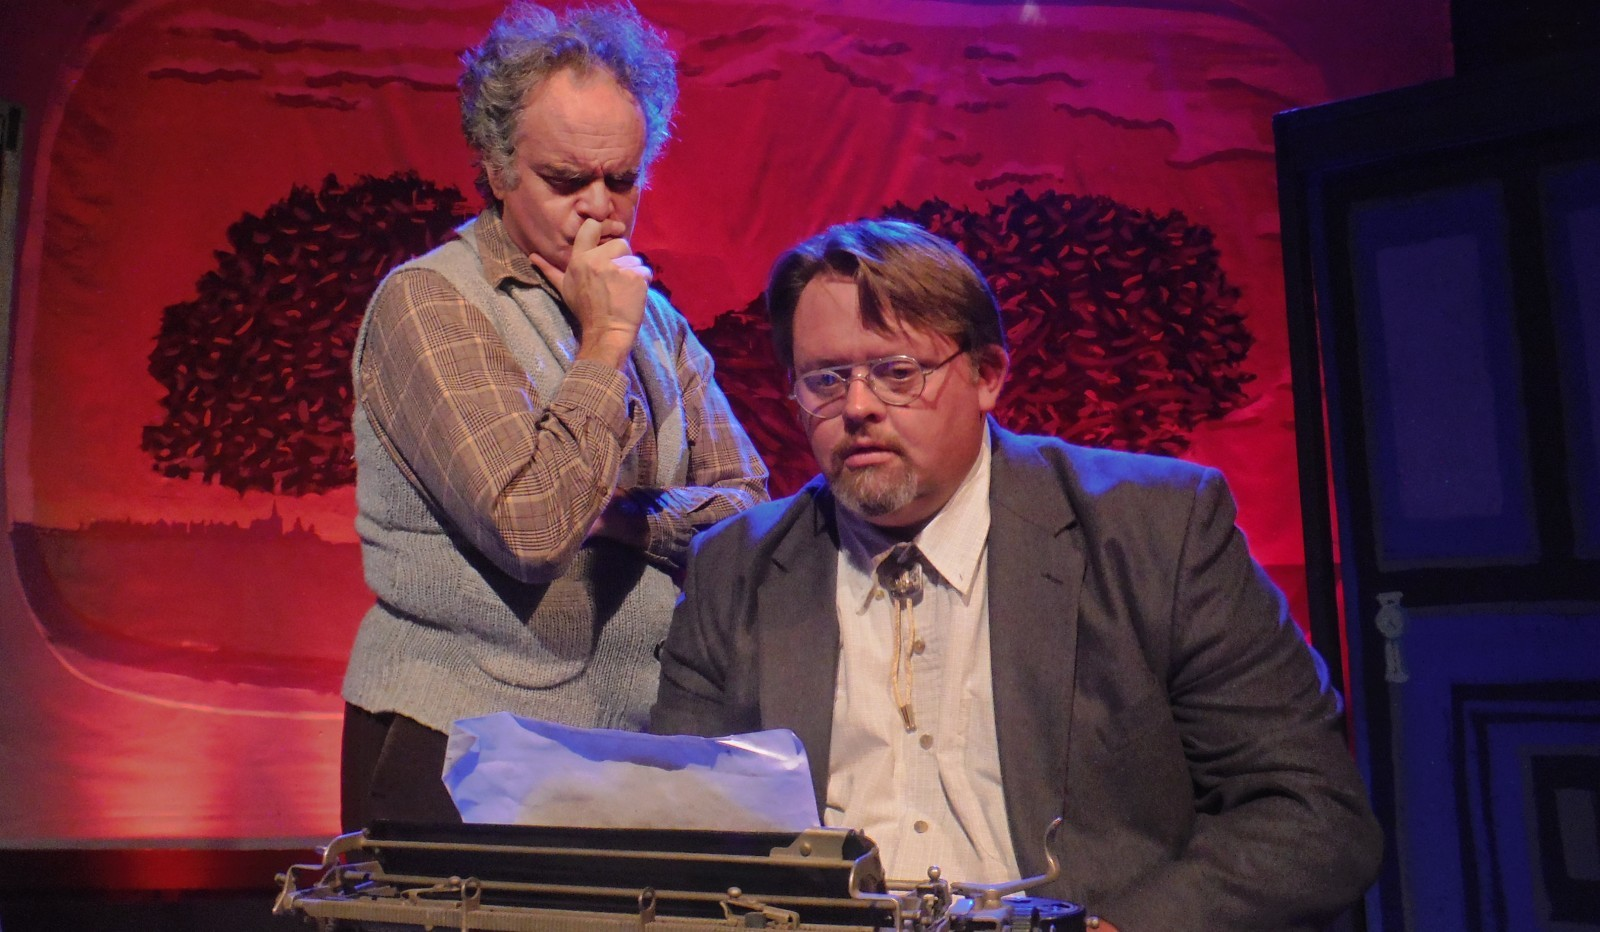 Tim Joyce and John Kennedy star in Subversive Theatre's season-opening production of 'Slaughterhouse Five.'